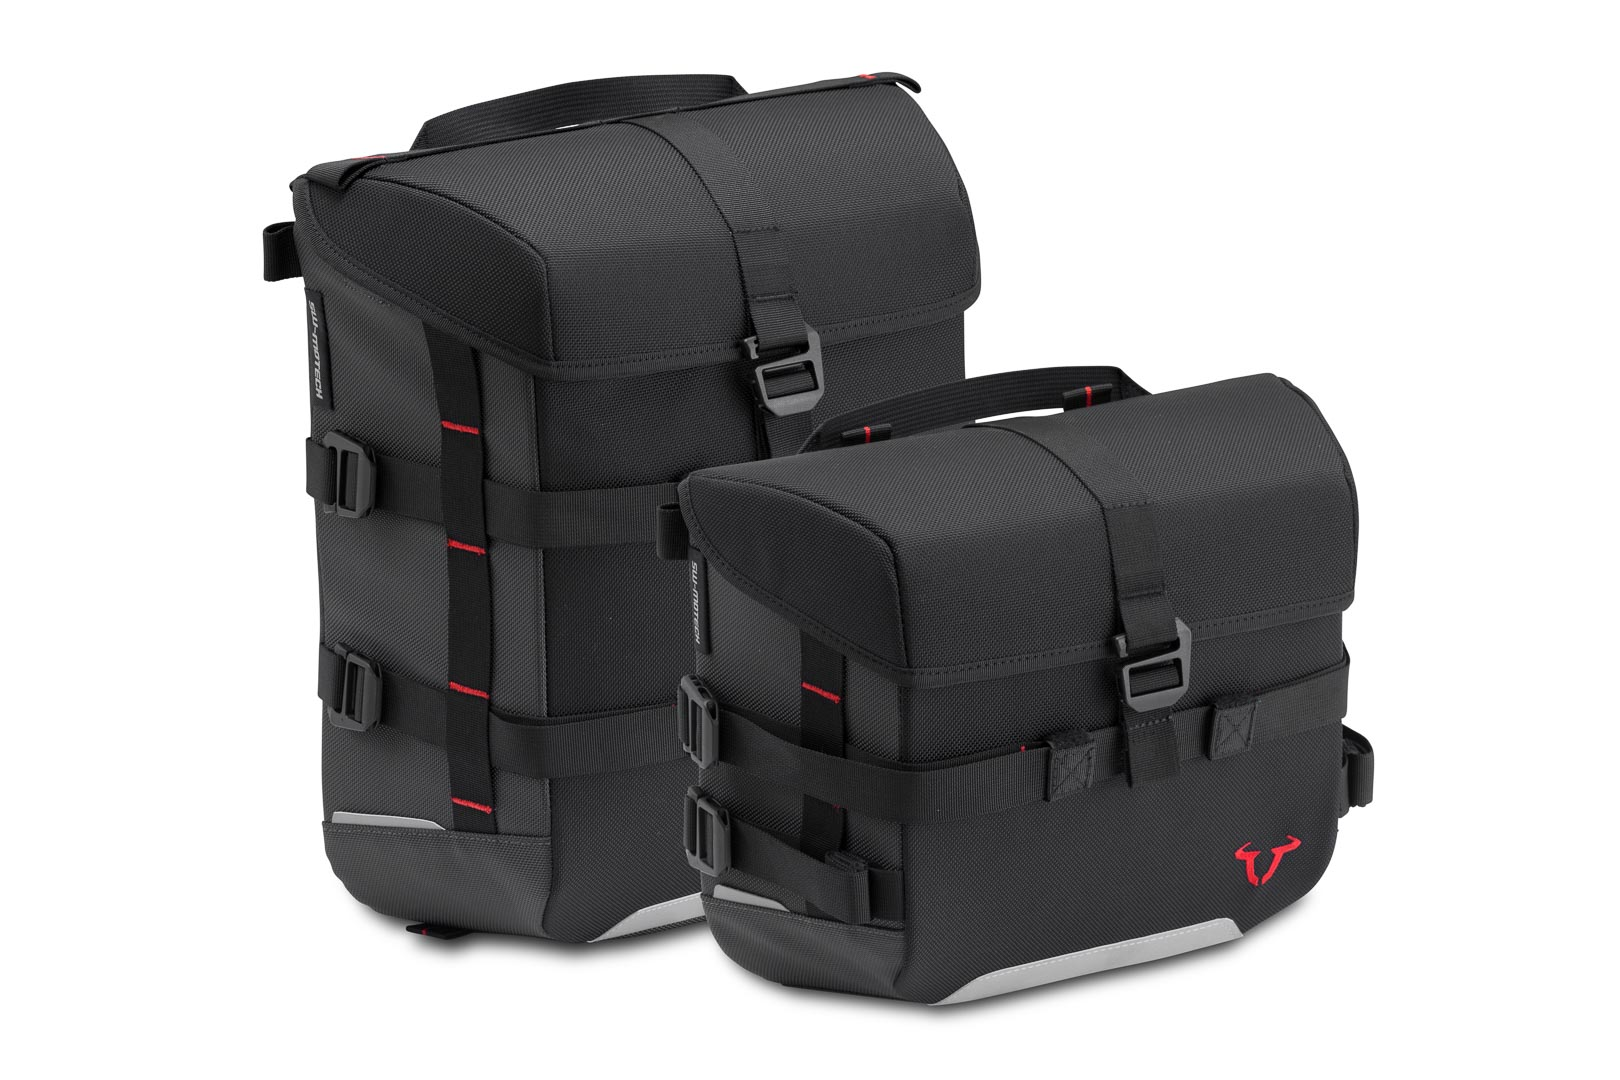 SW-Motech SysBag 15/10 Taschen-System - Ducati Monster 821 (14-17) / 1200 (14-16). BC.SYS.22.511.30000/B